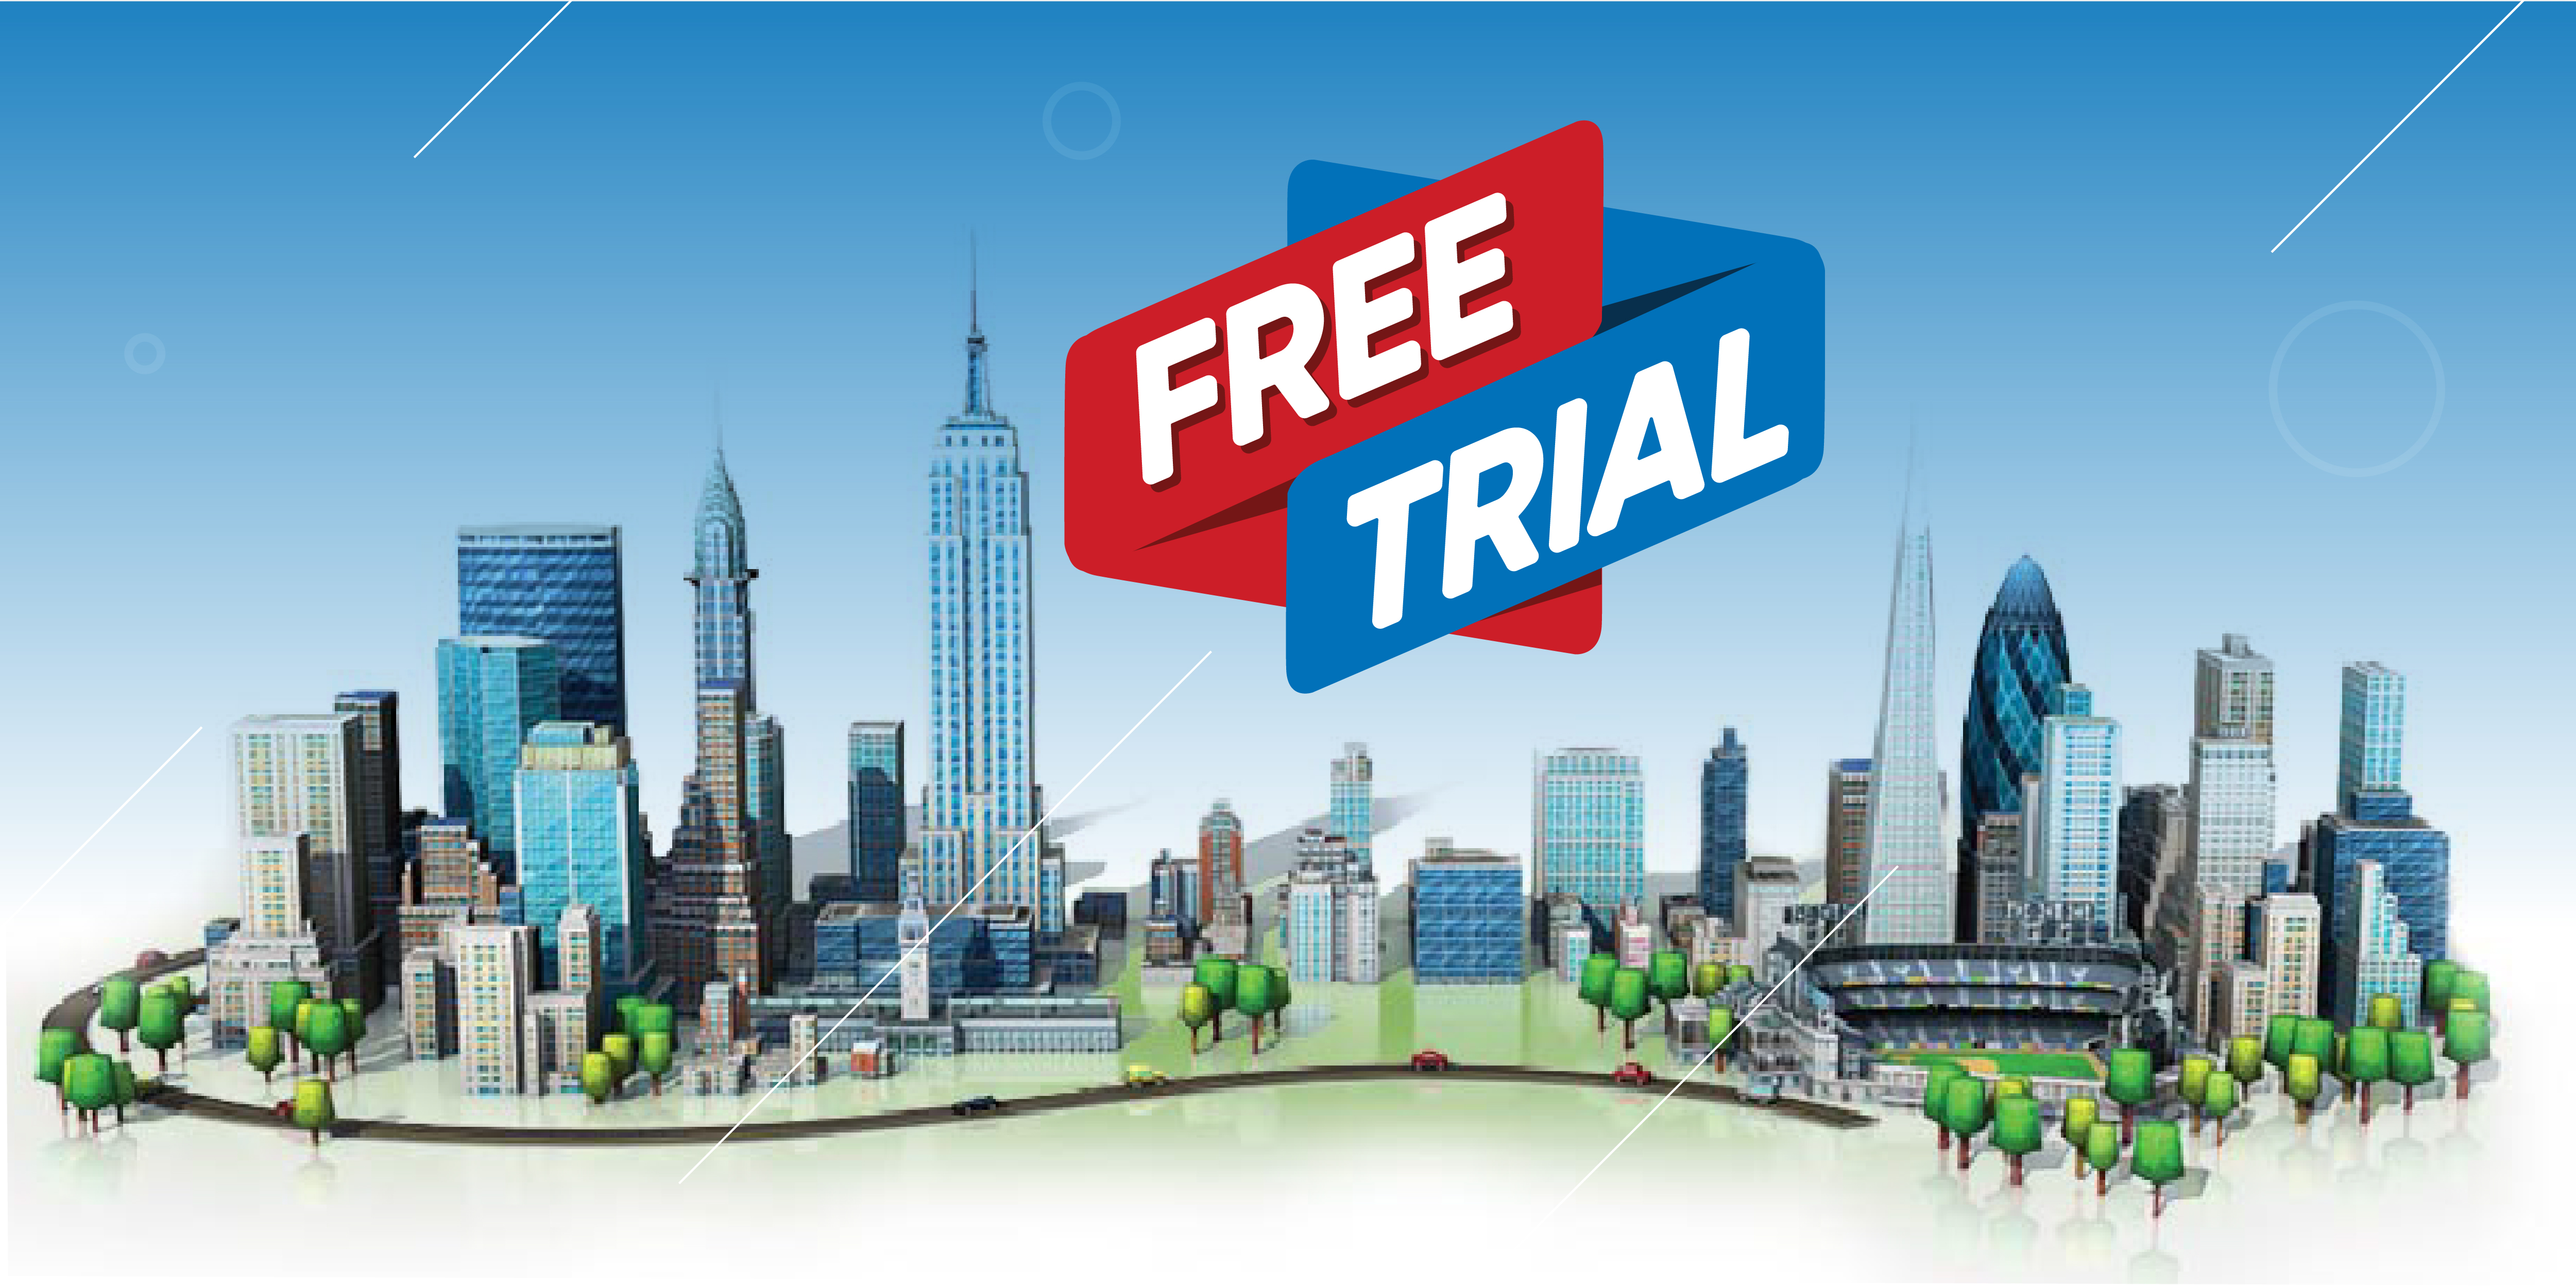 Offering now: Free trial of all of WRLD's Developer plans